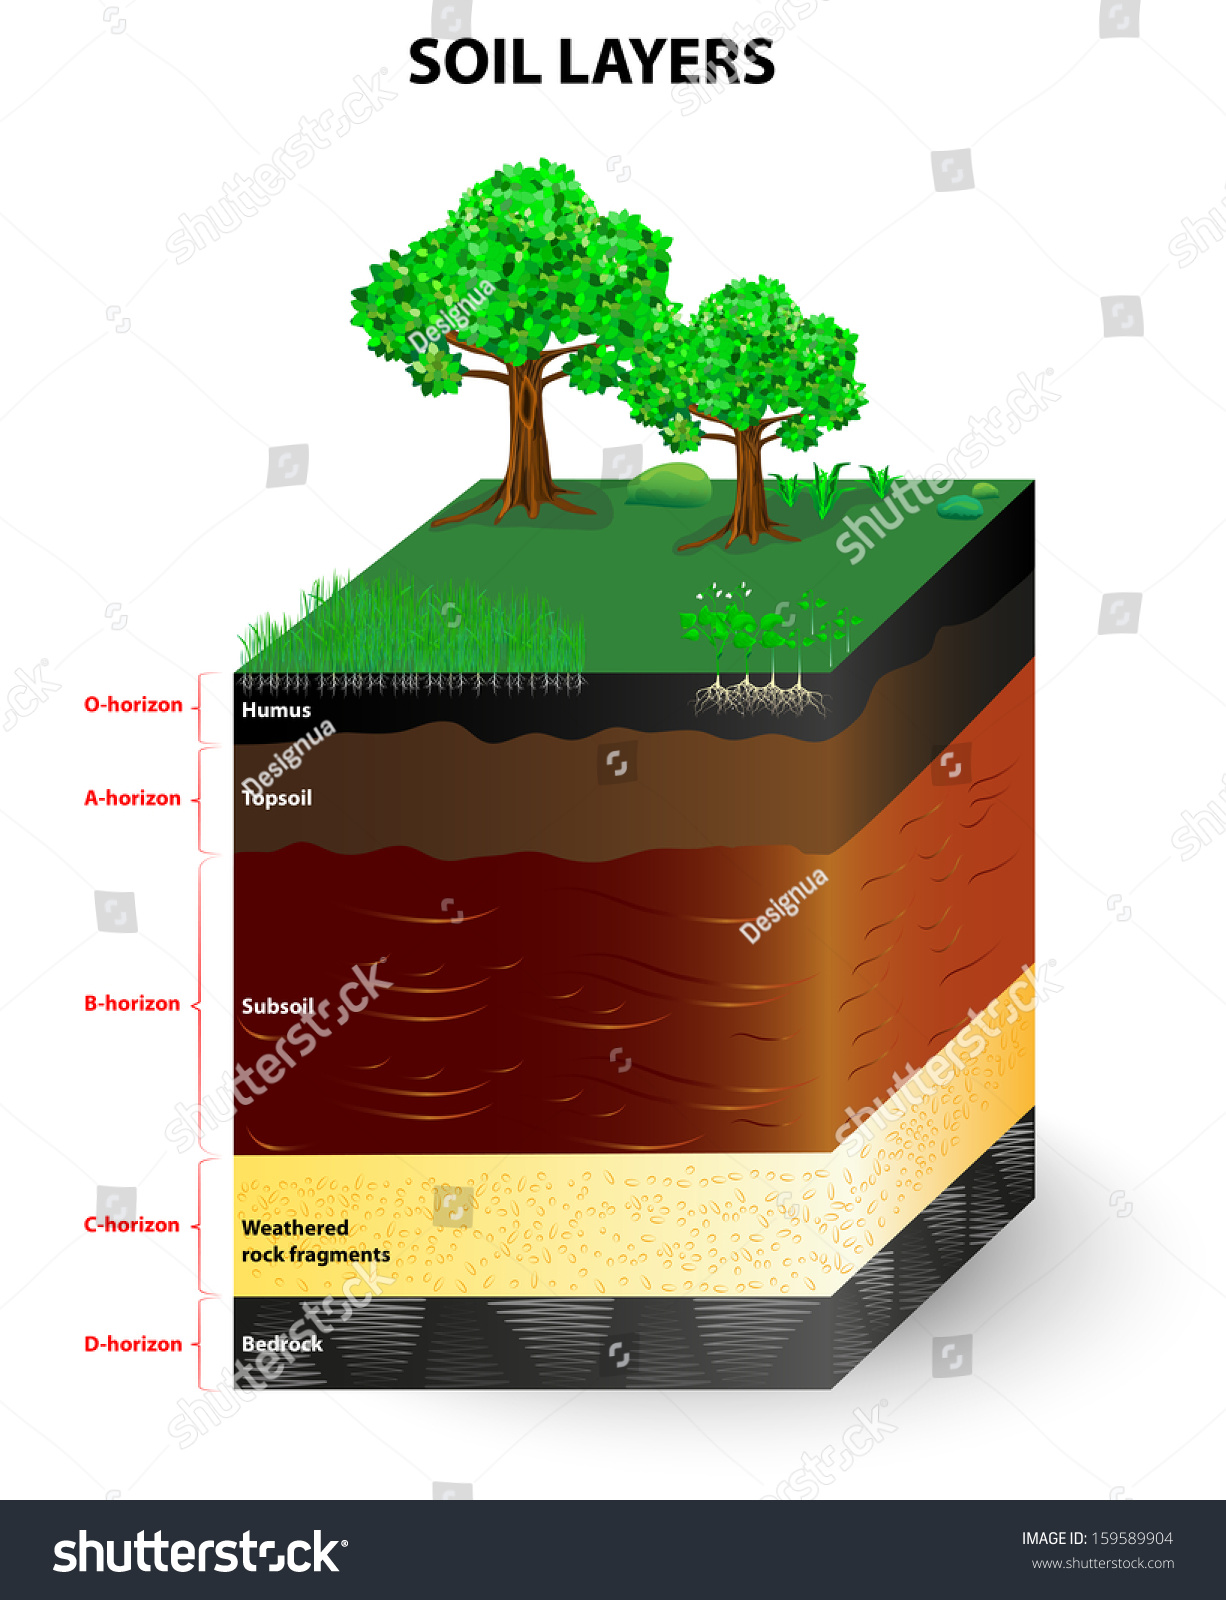 Soil formation soil horizons soil mixture stock for Soil forming minerals